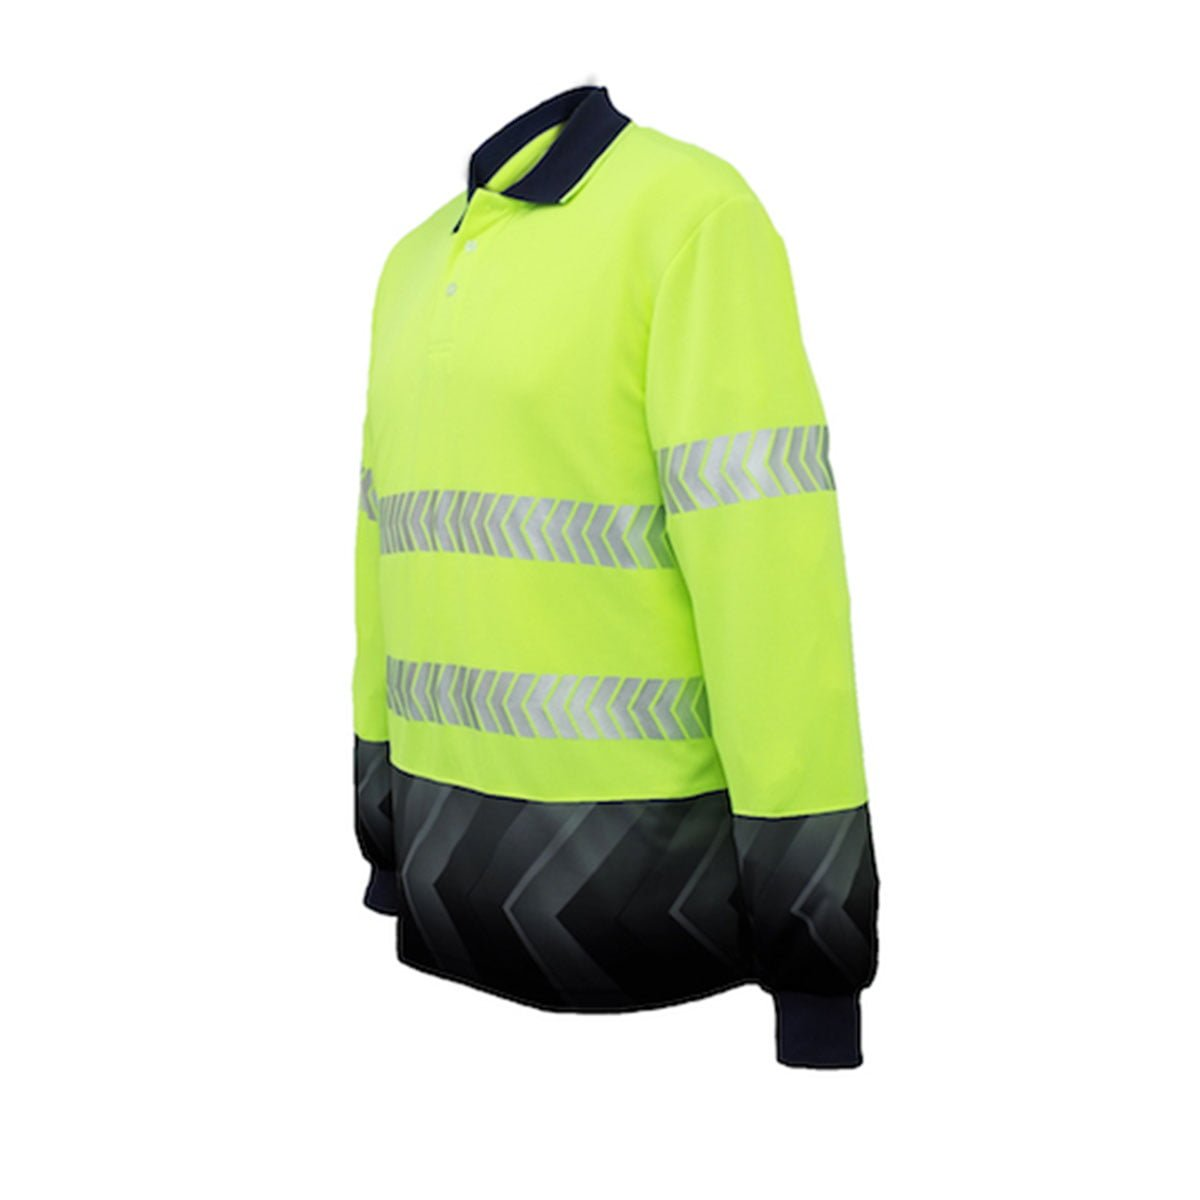 HI-VIS L/S SUBLIMATED REFLECTIVE POLO-Lime / Navy